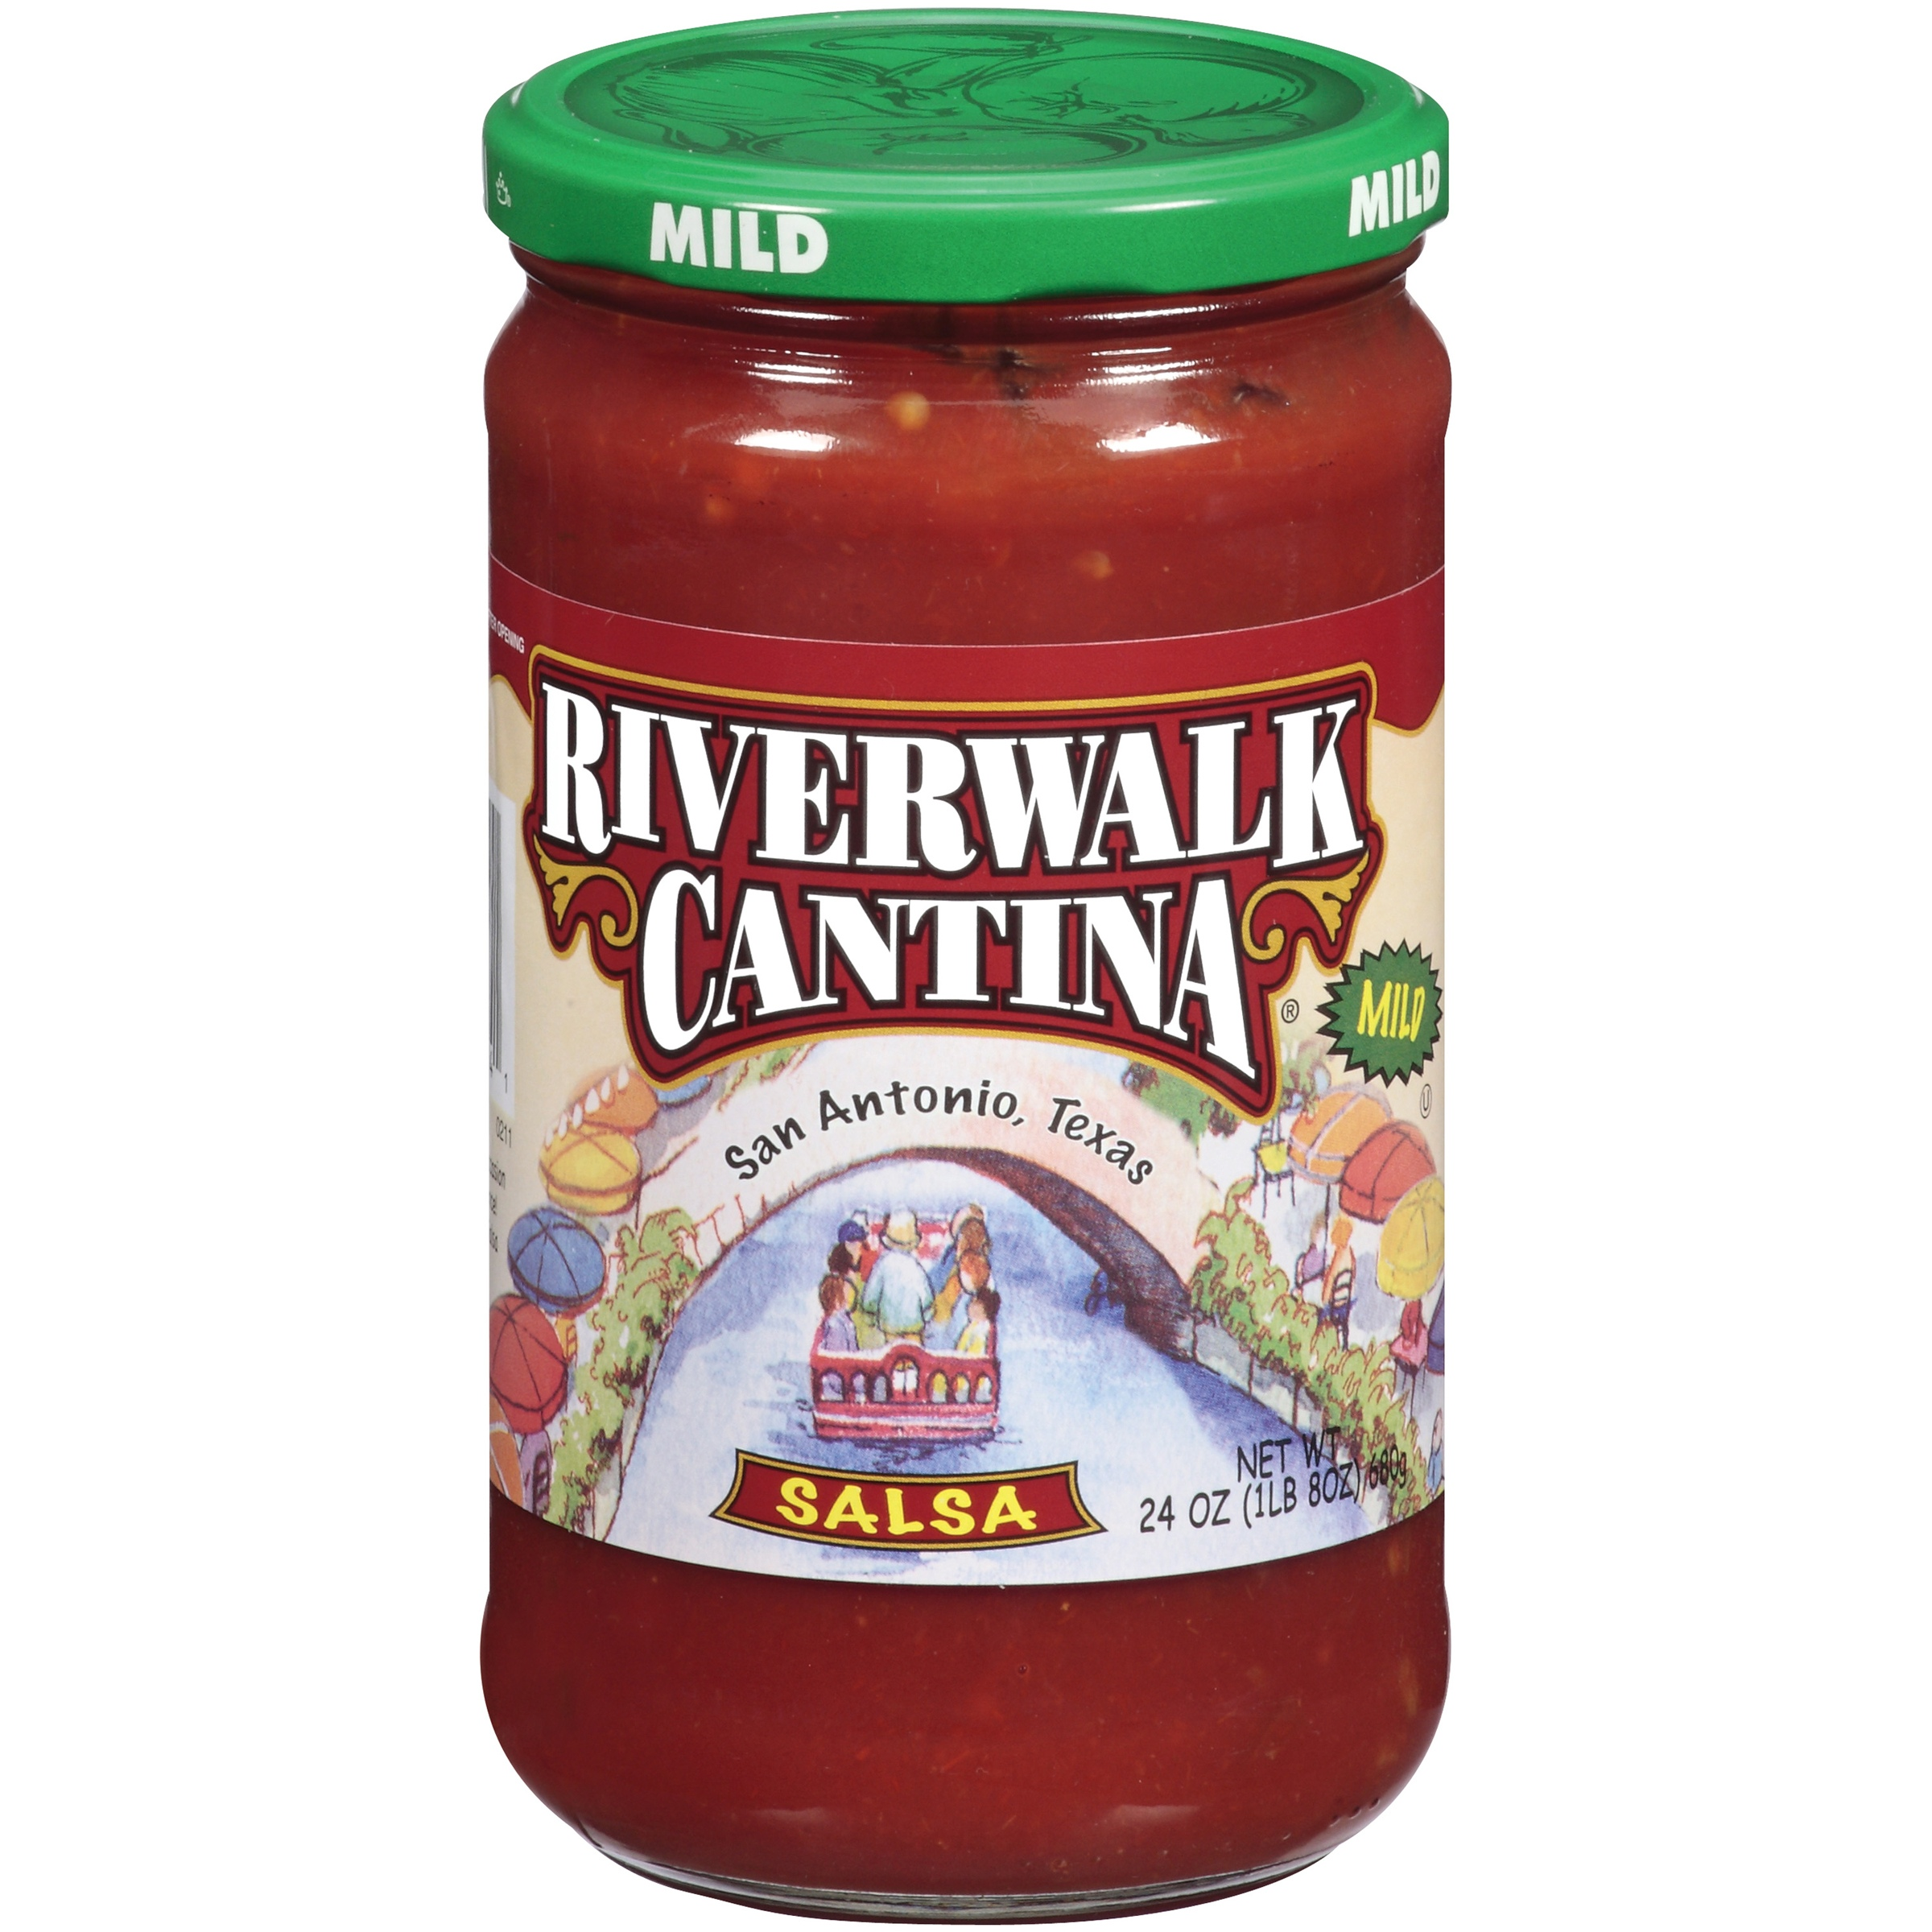 River Walk Cantina Mild Salsa 24 Oz Jar by Bay Valley Foods